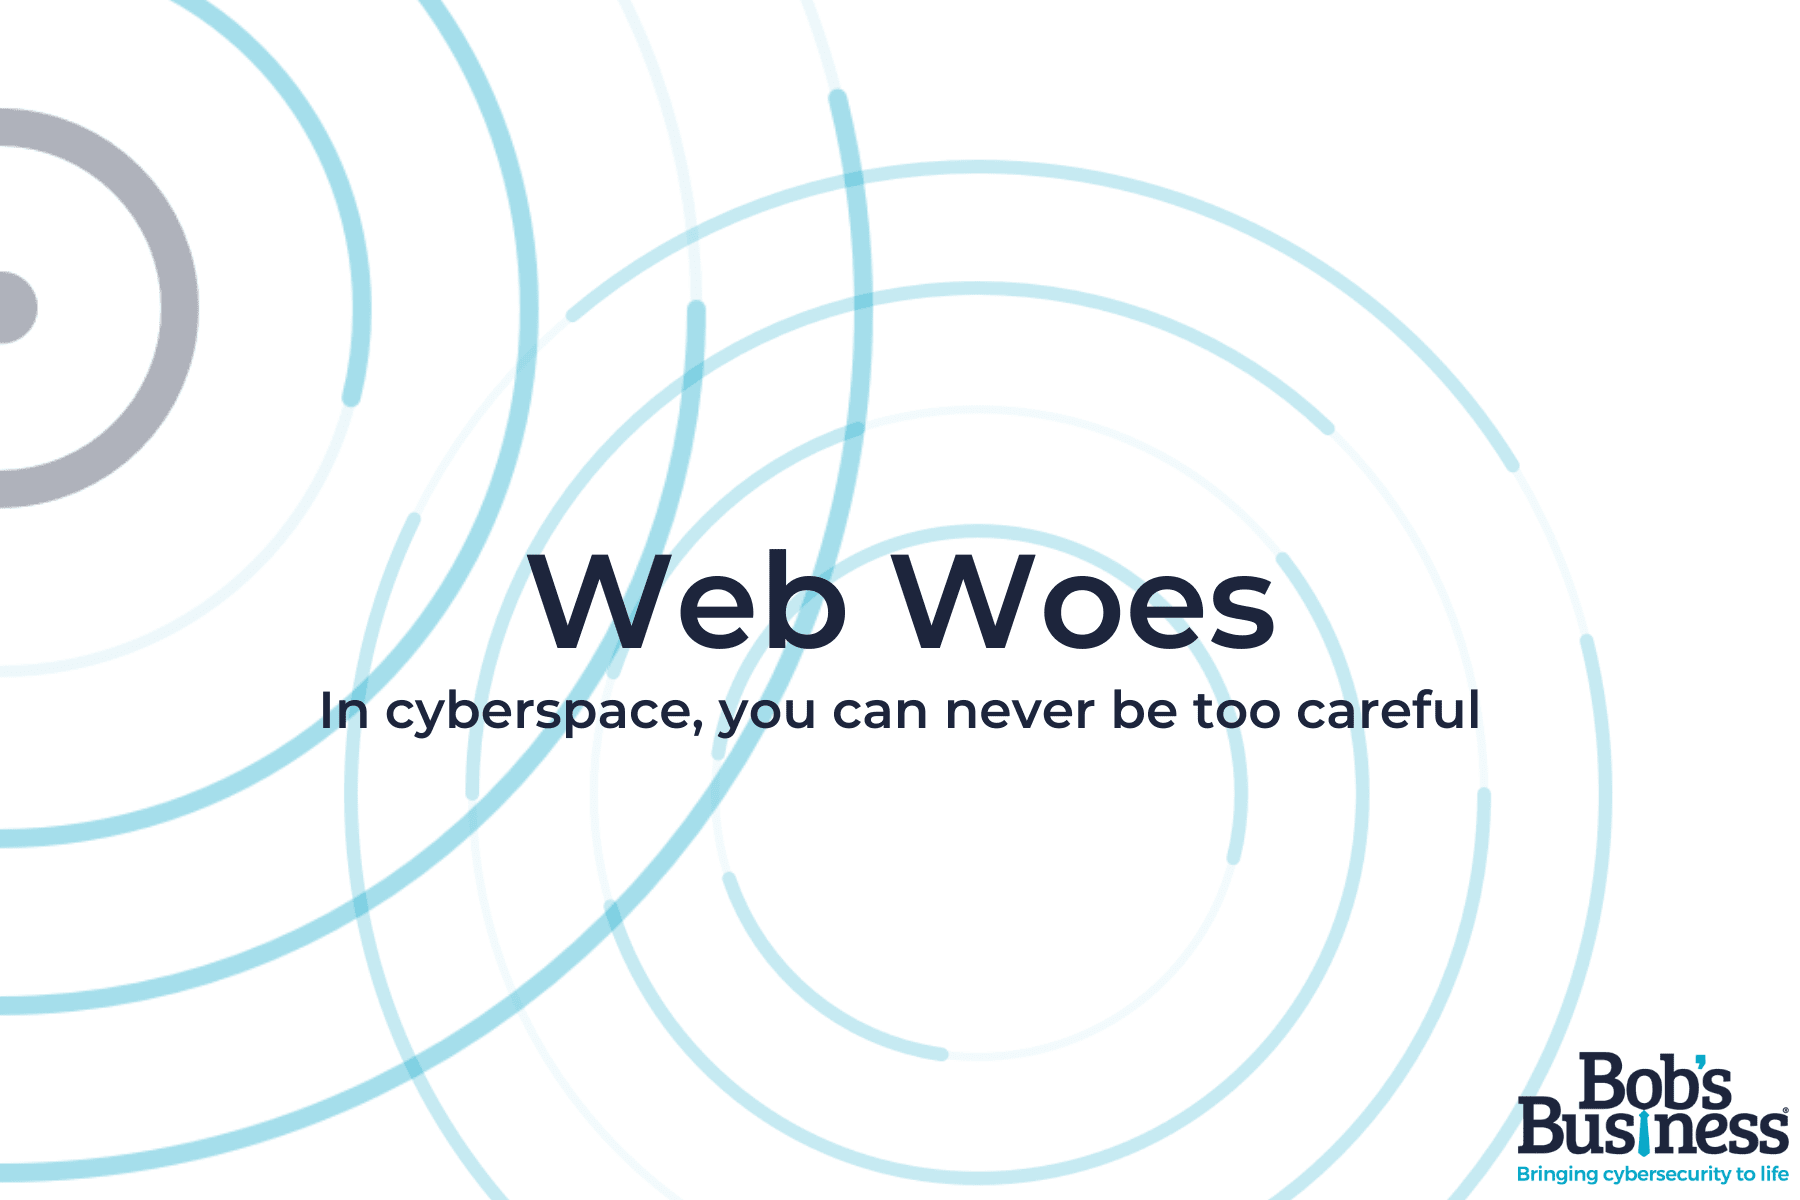 Web Woes